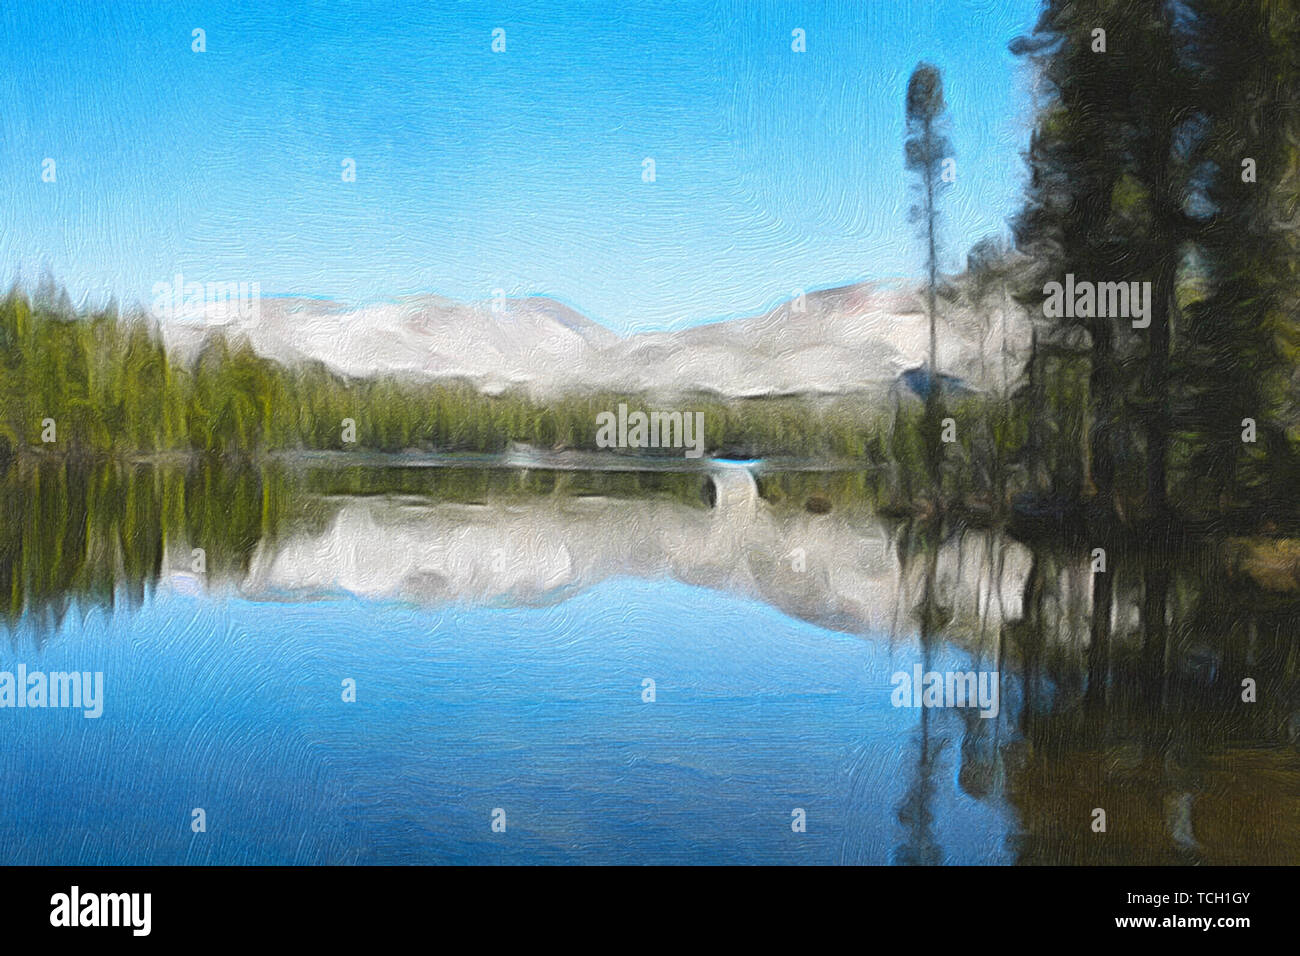 oil painting, lake, landscape, trees, forest, mountains, - Stock Image